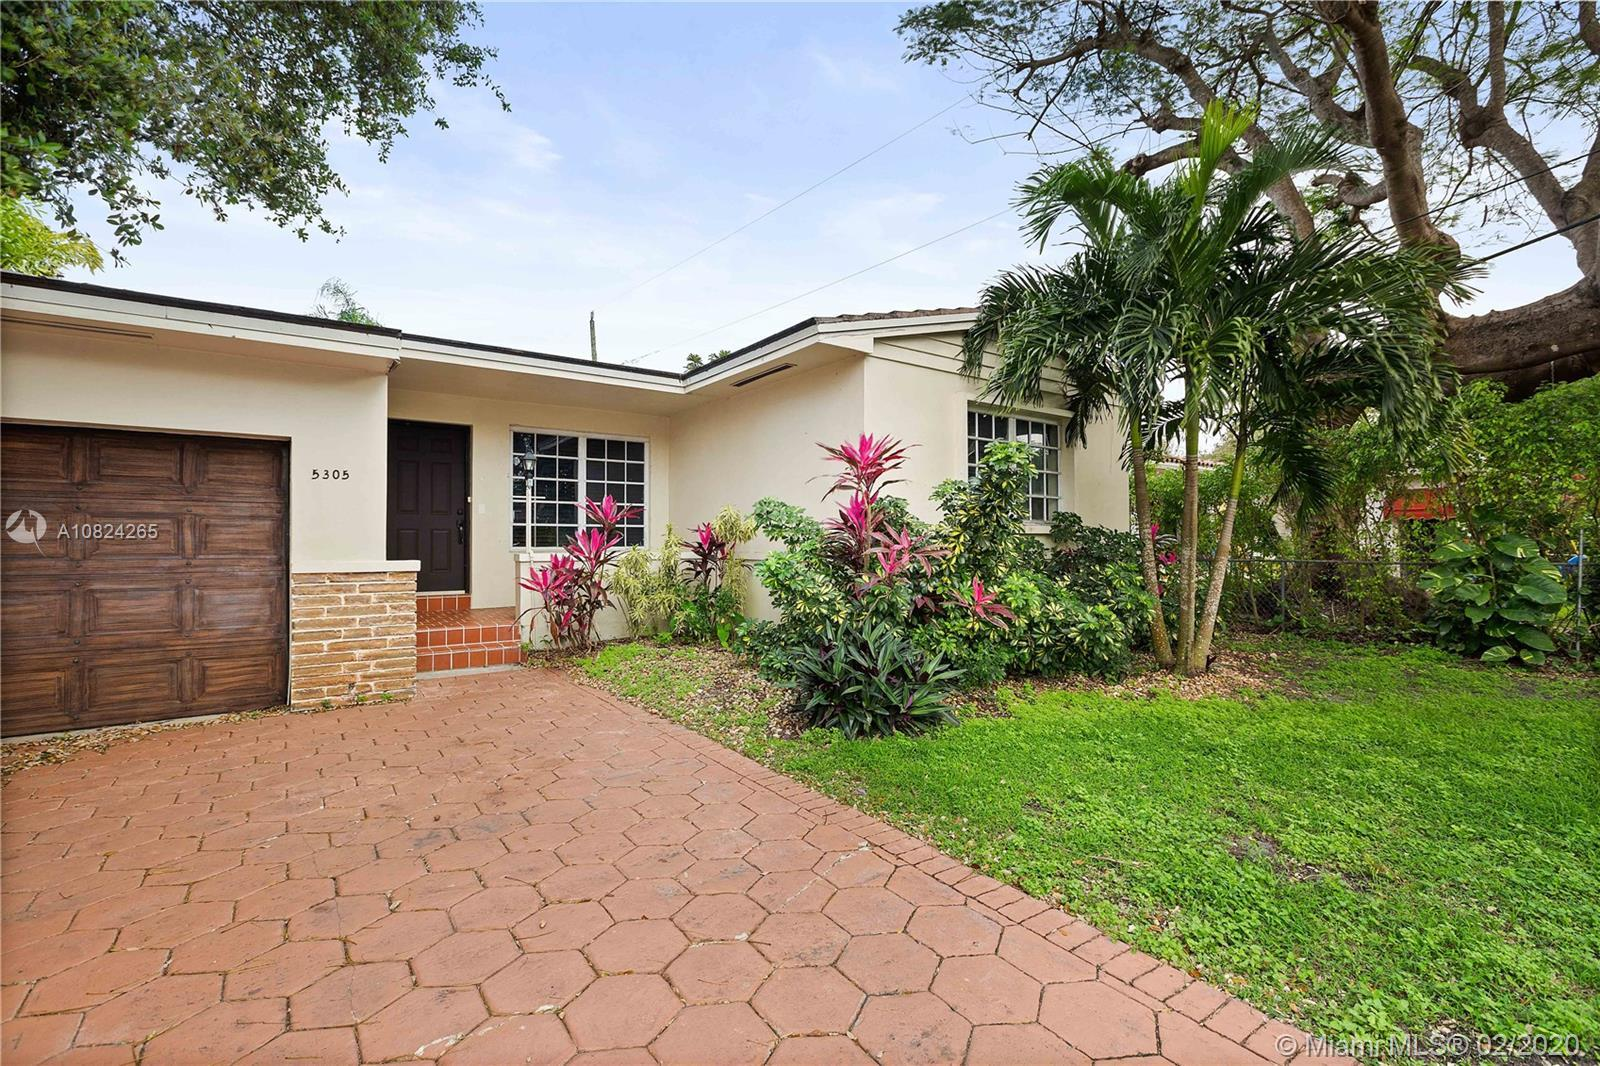 Exceptionally located in Coral Gables just a short walk from the University of Miami. This lovely 3-